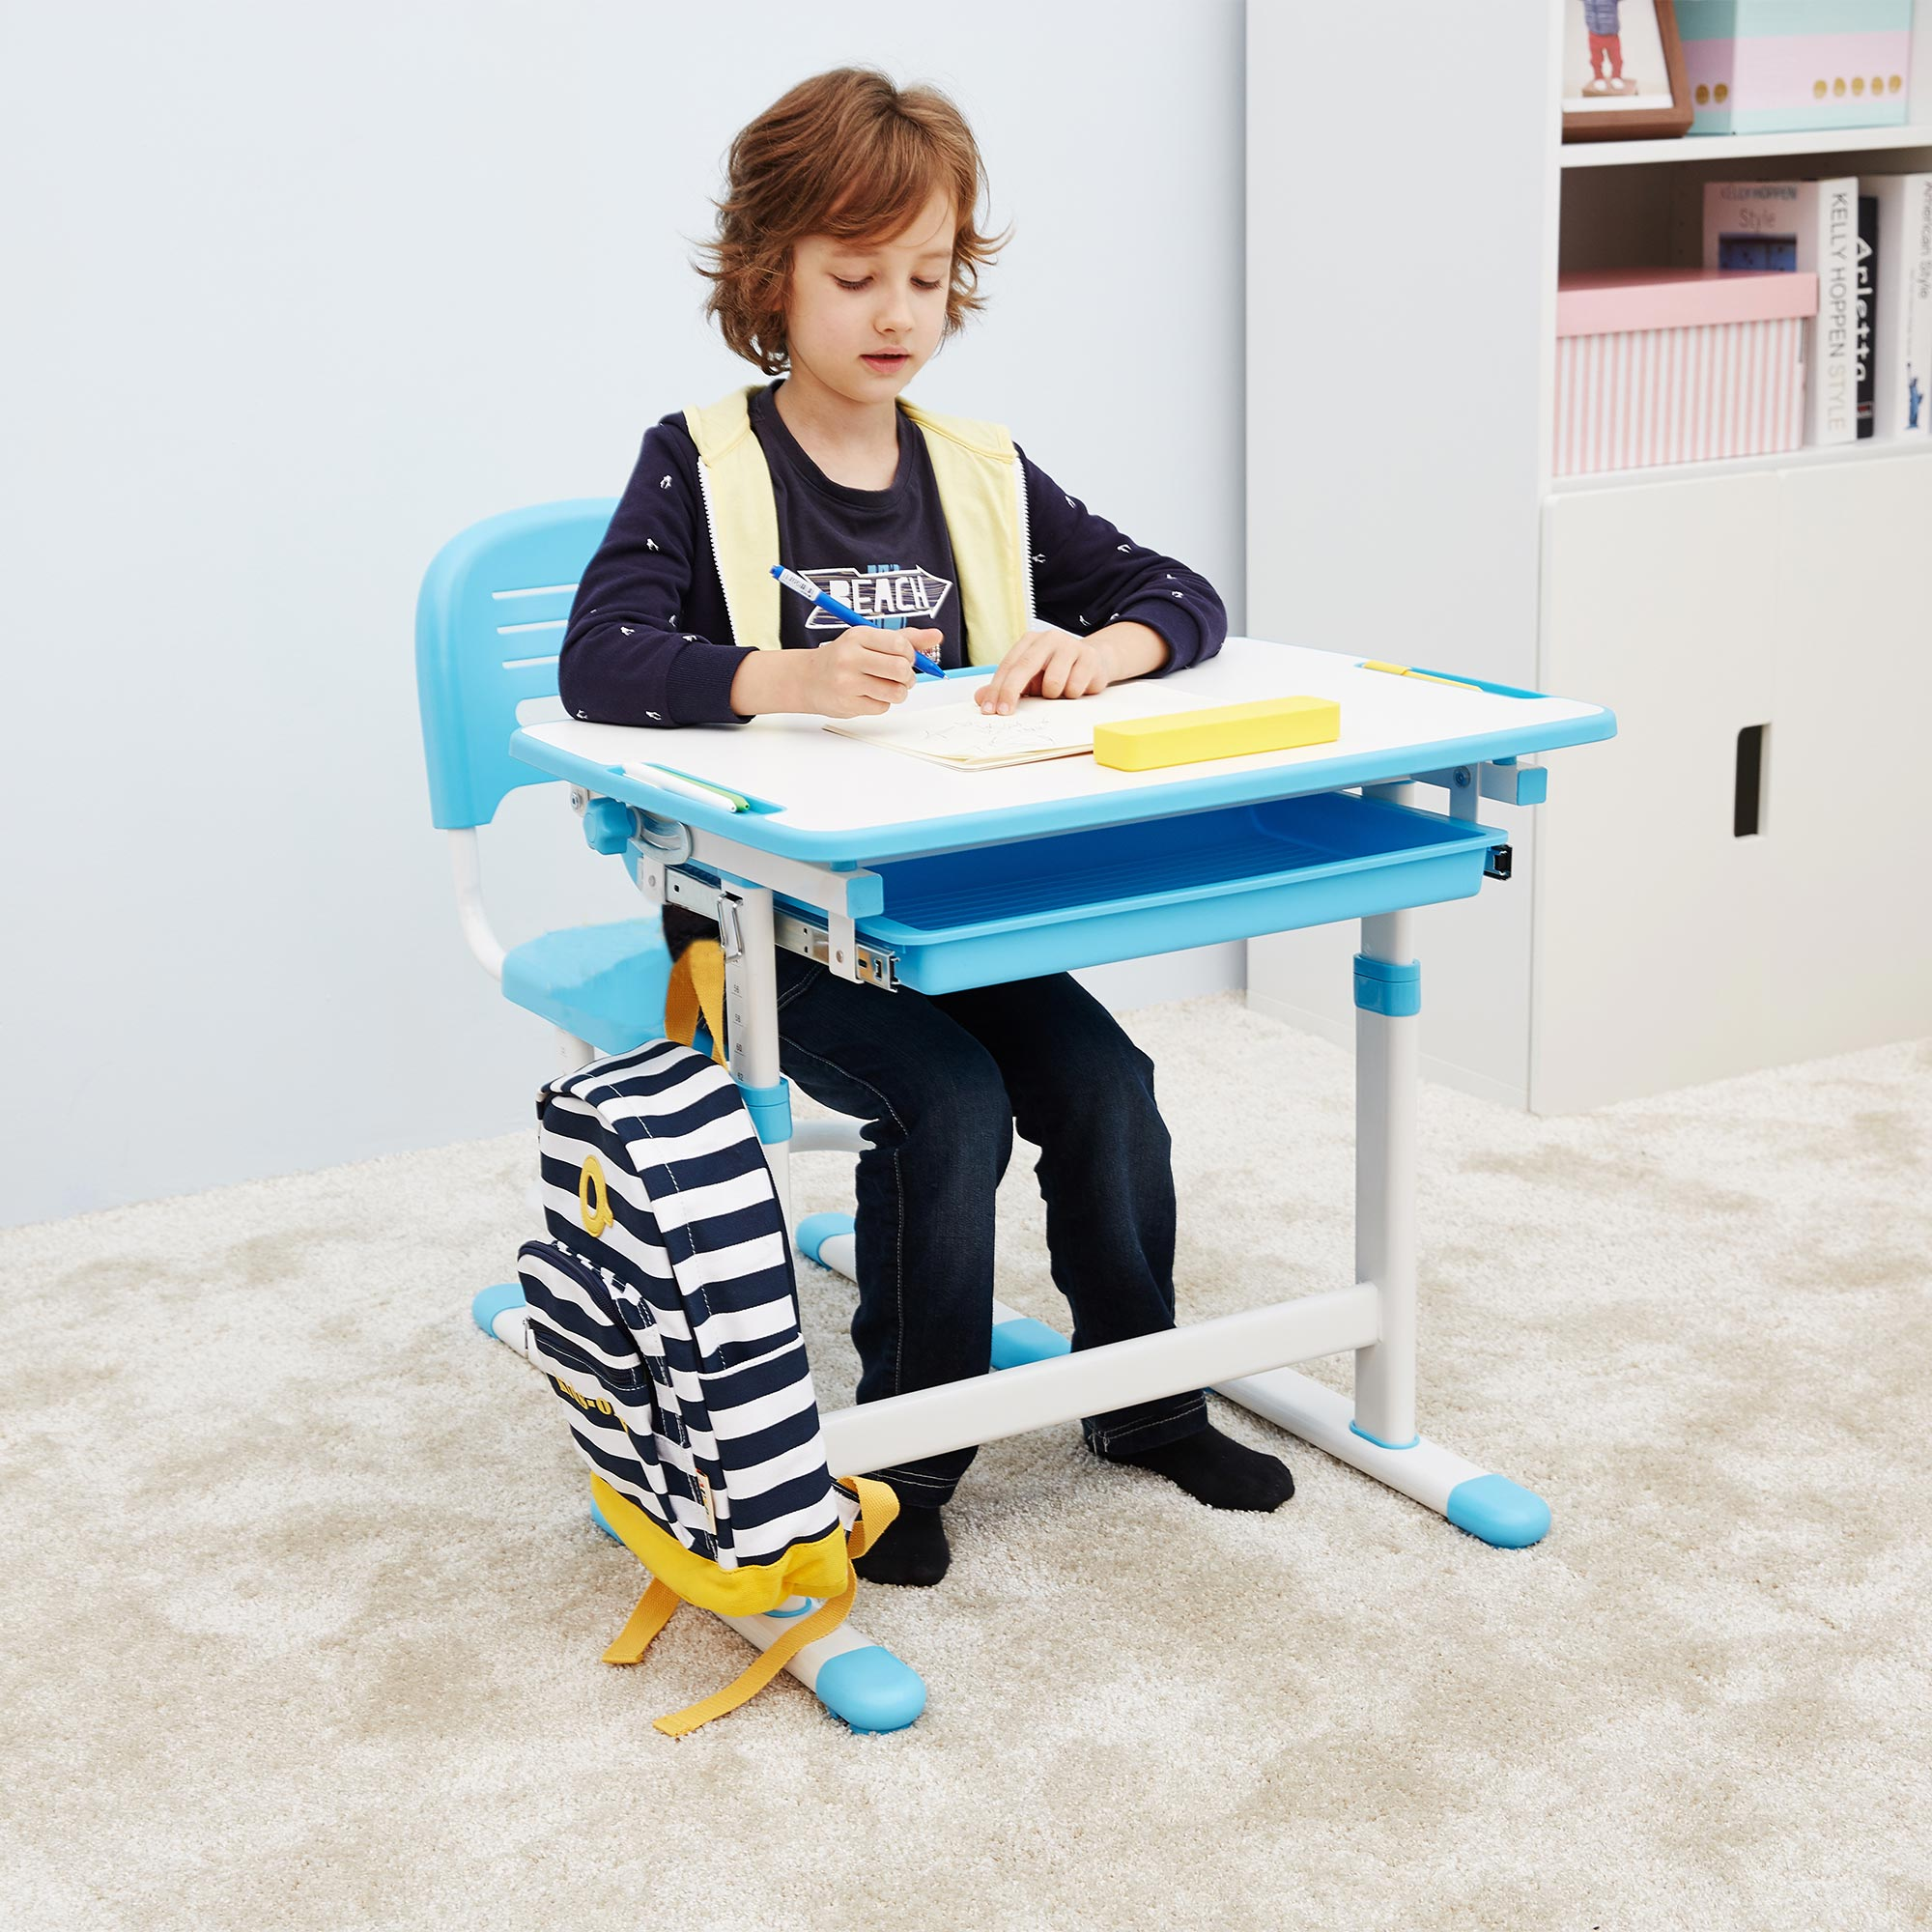 Height-Adjustable-Kids-Blue-Desk-Chair-Ergonomic-Children-Table-no-cupholder-09